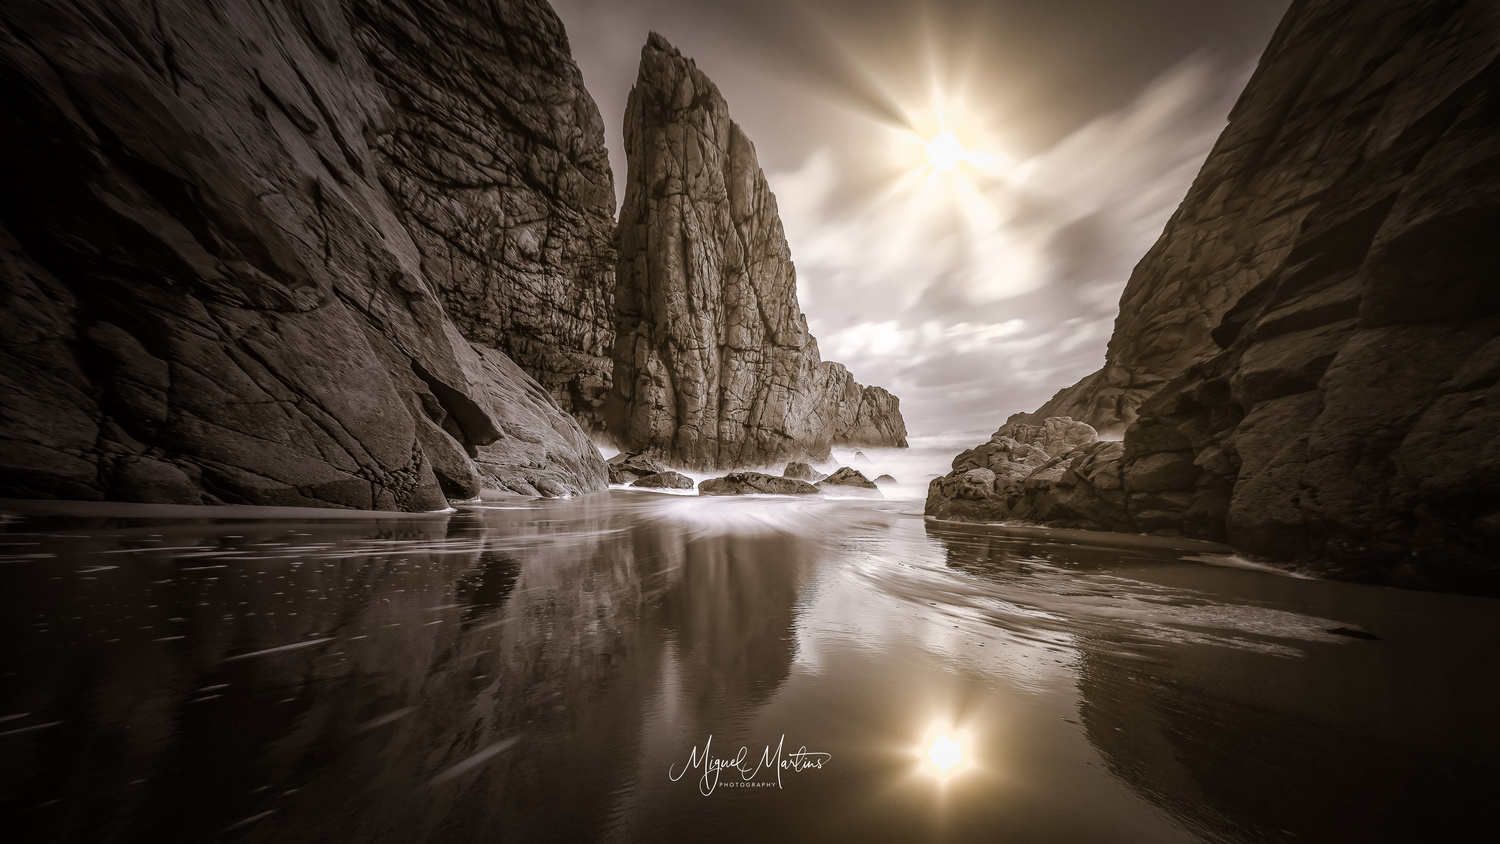 Flow blow by Miguel Martins